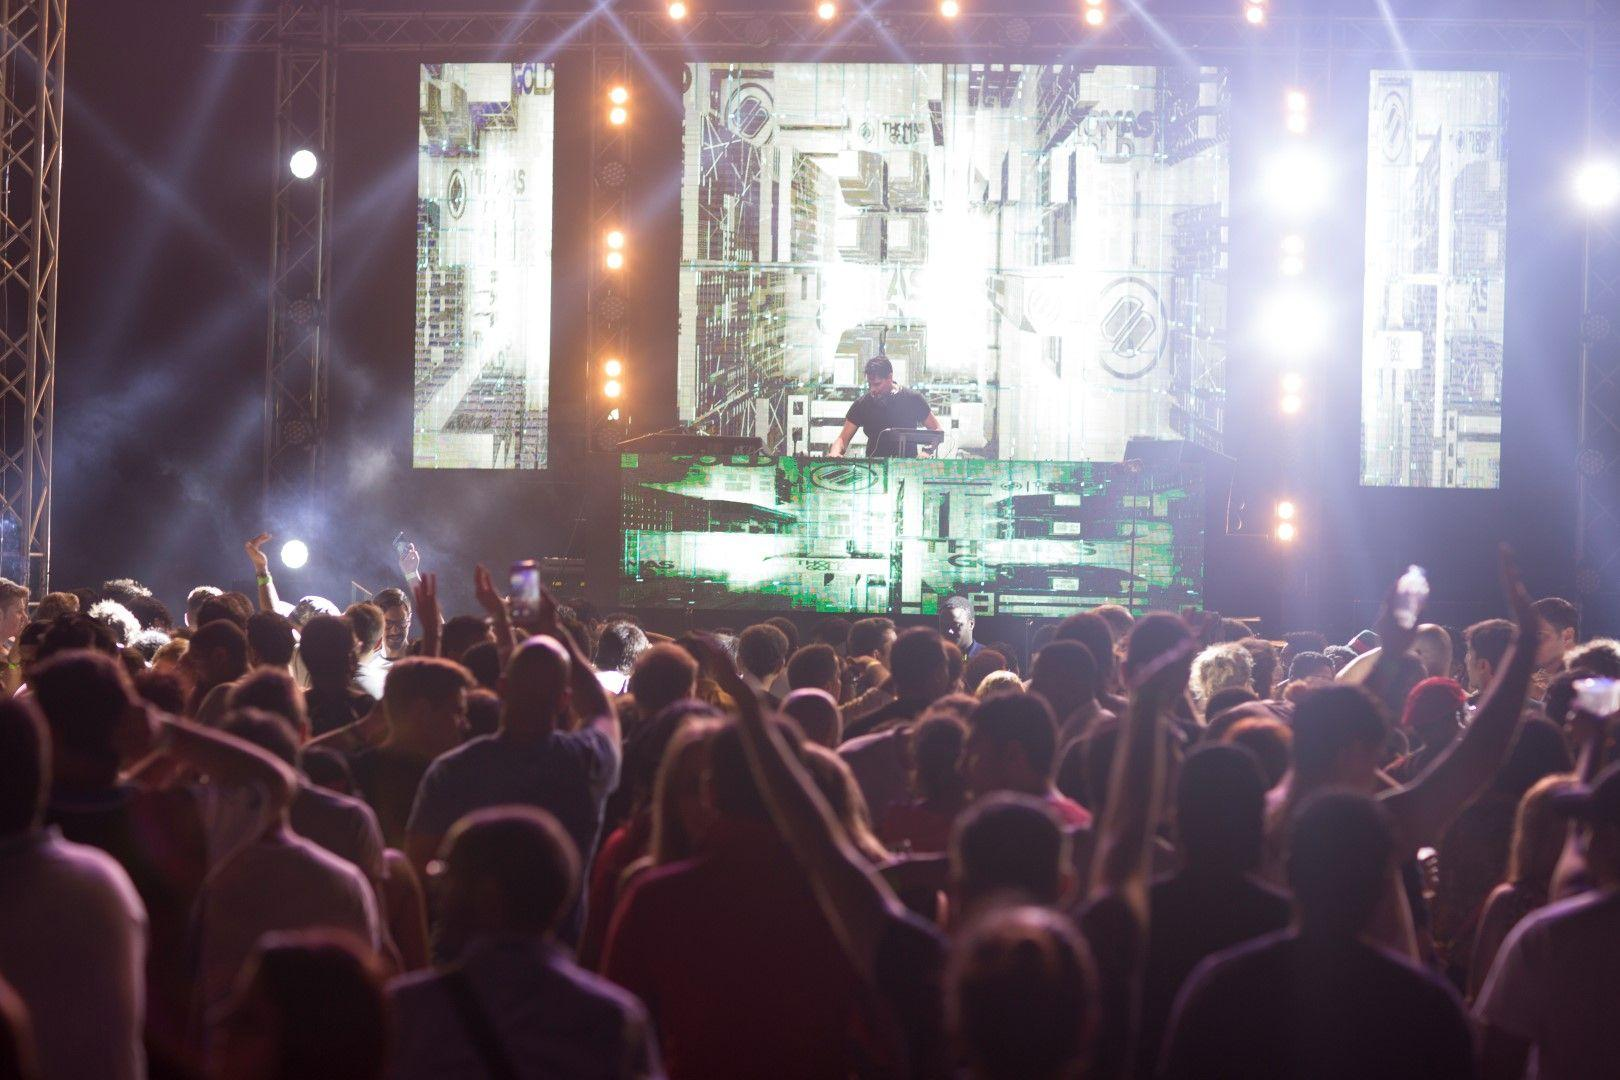 Ras Al Khaimah Will Party All Night This Weekend